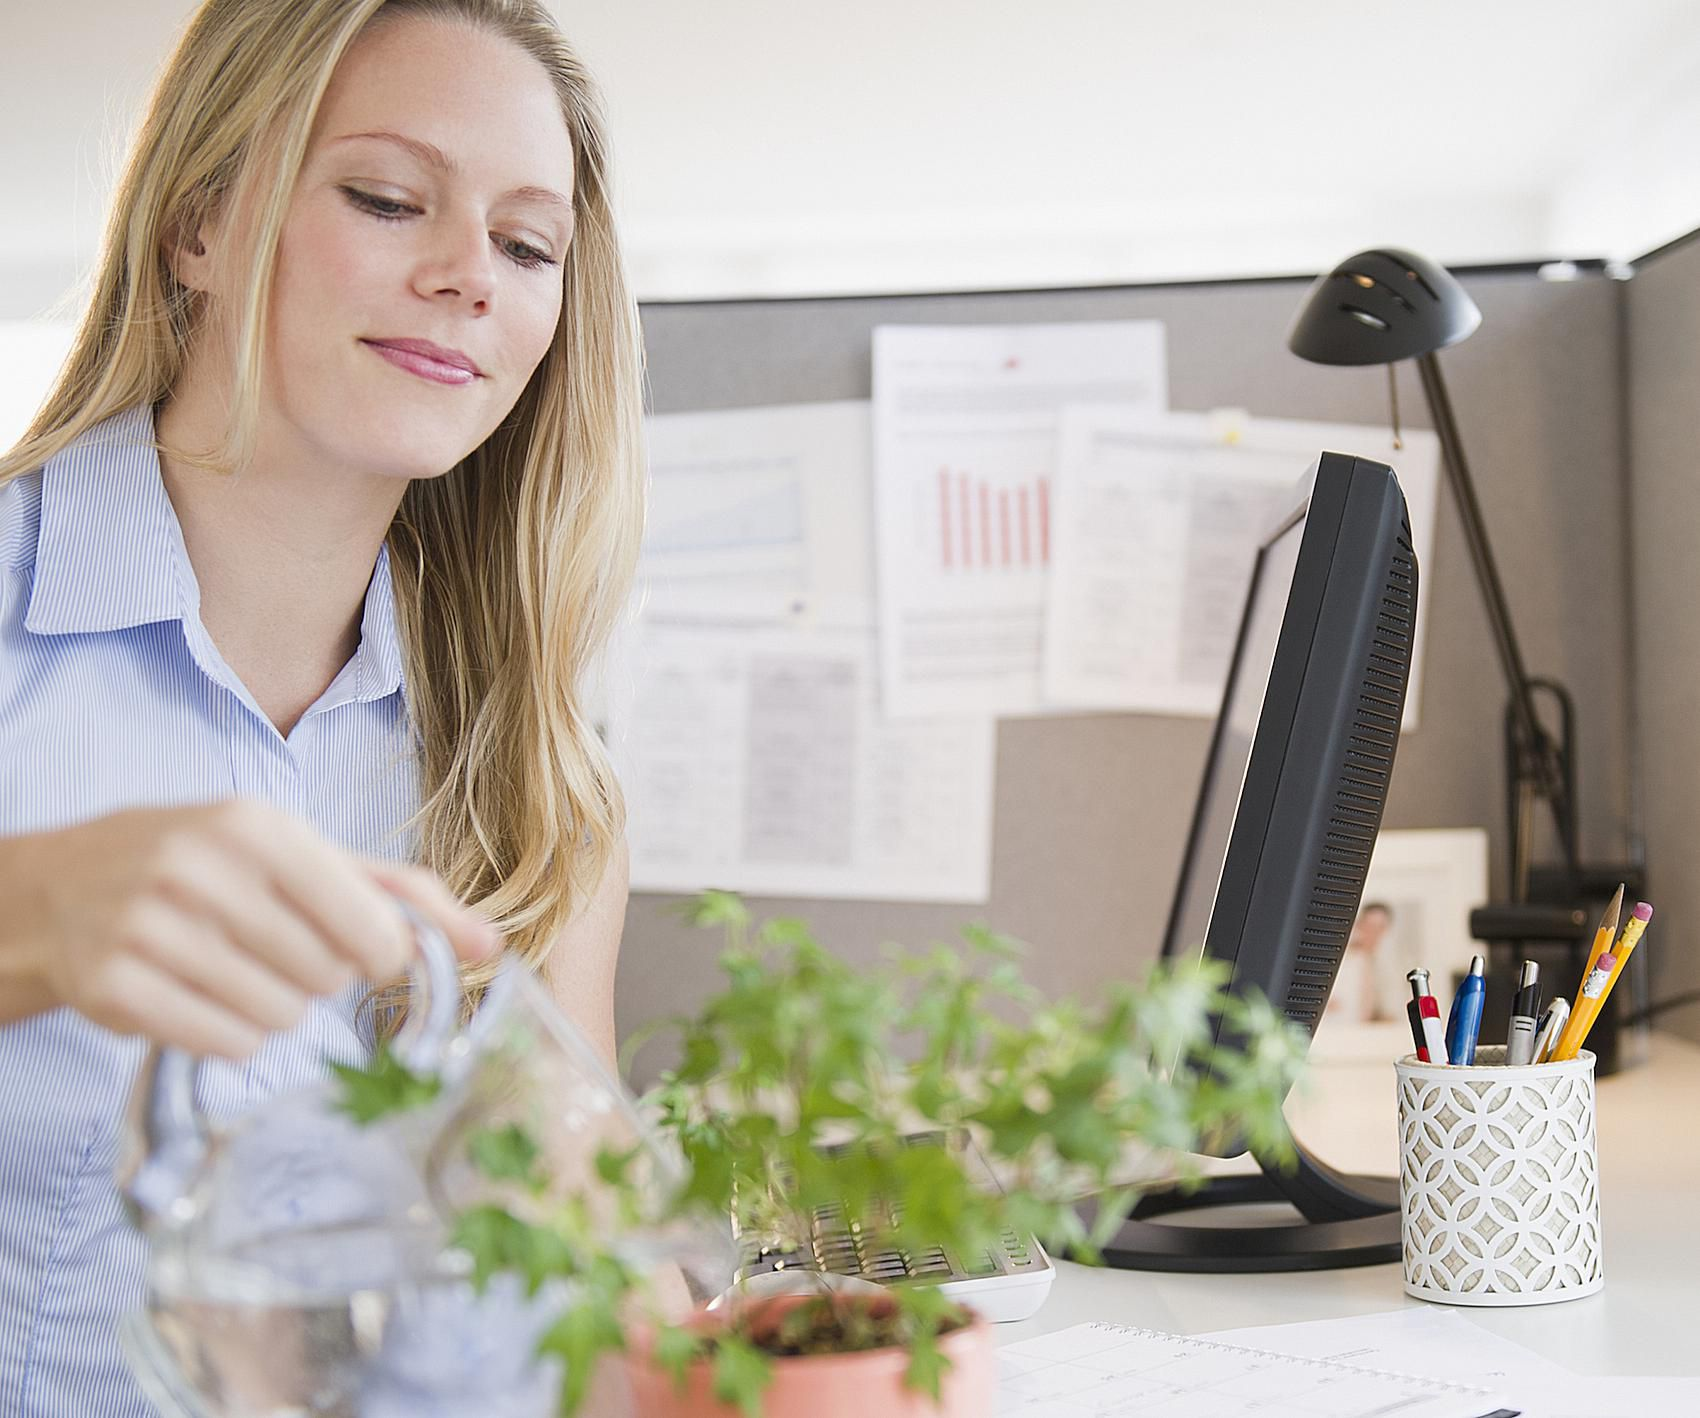 How Can I Create Good Feng Shui In My Office Cubicle?